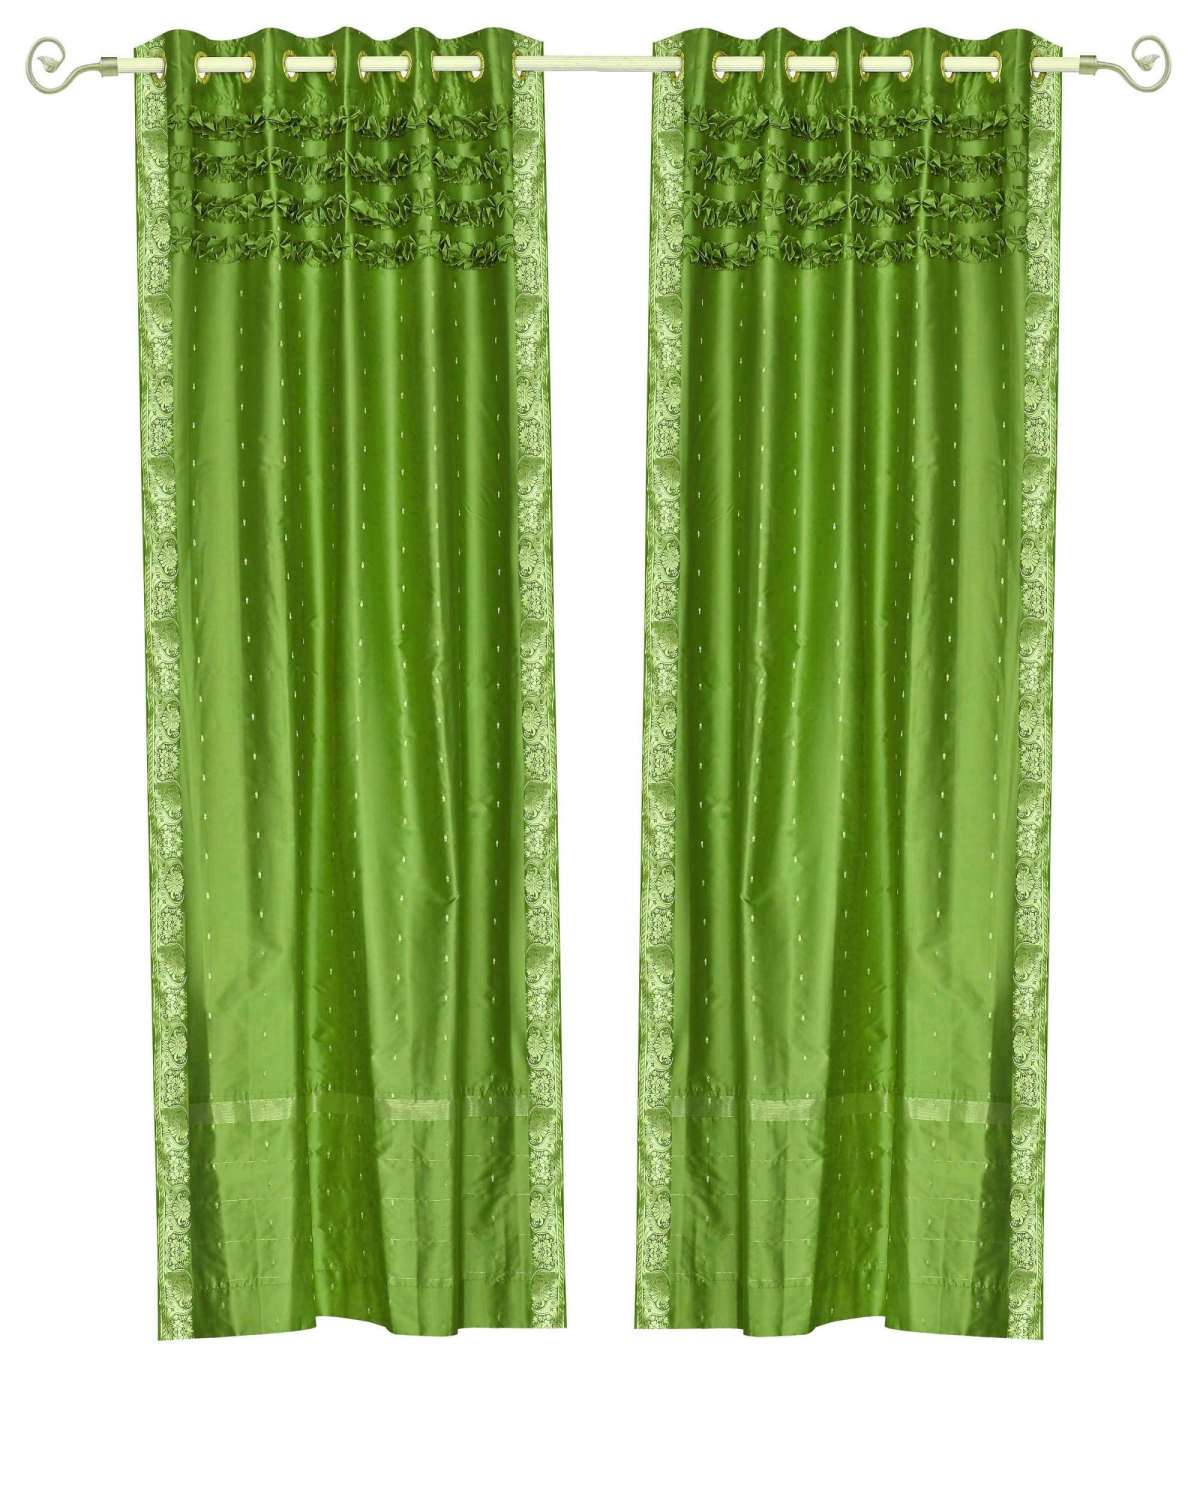 Forest Green Hand Crafted Grommet Top Sheer Sari Curtain Panel -Piece CTHCFGPARENT